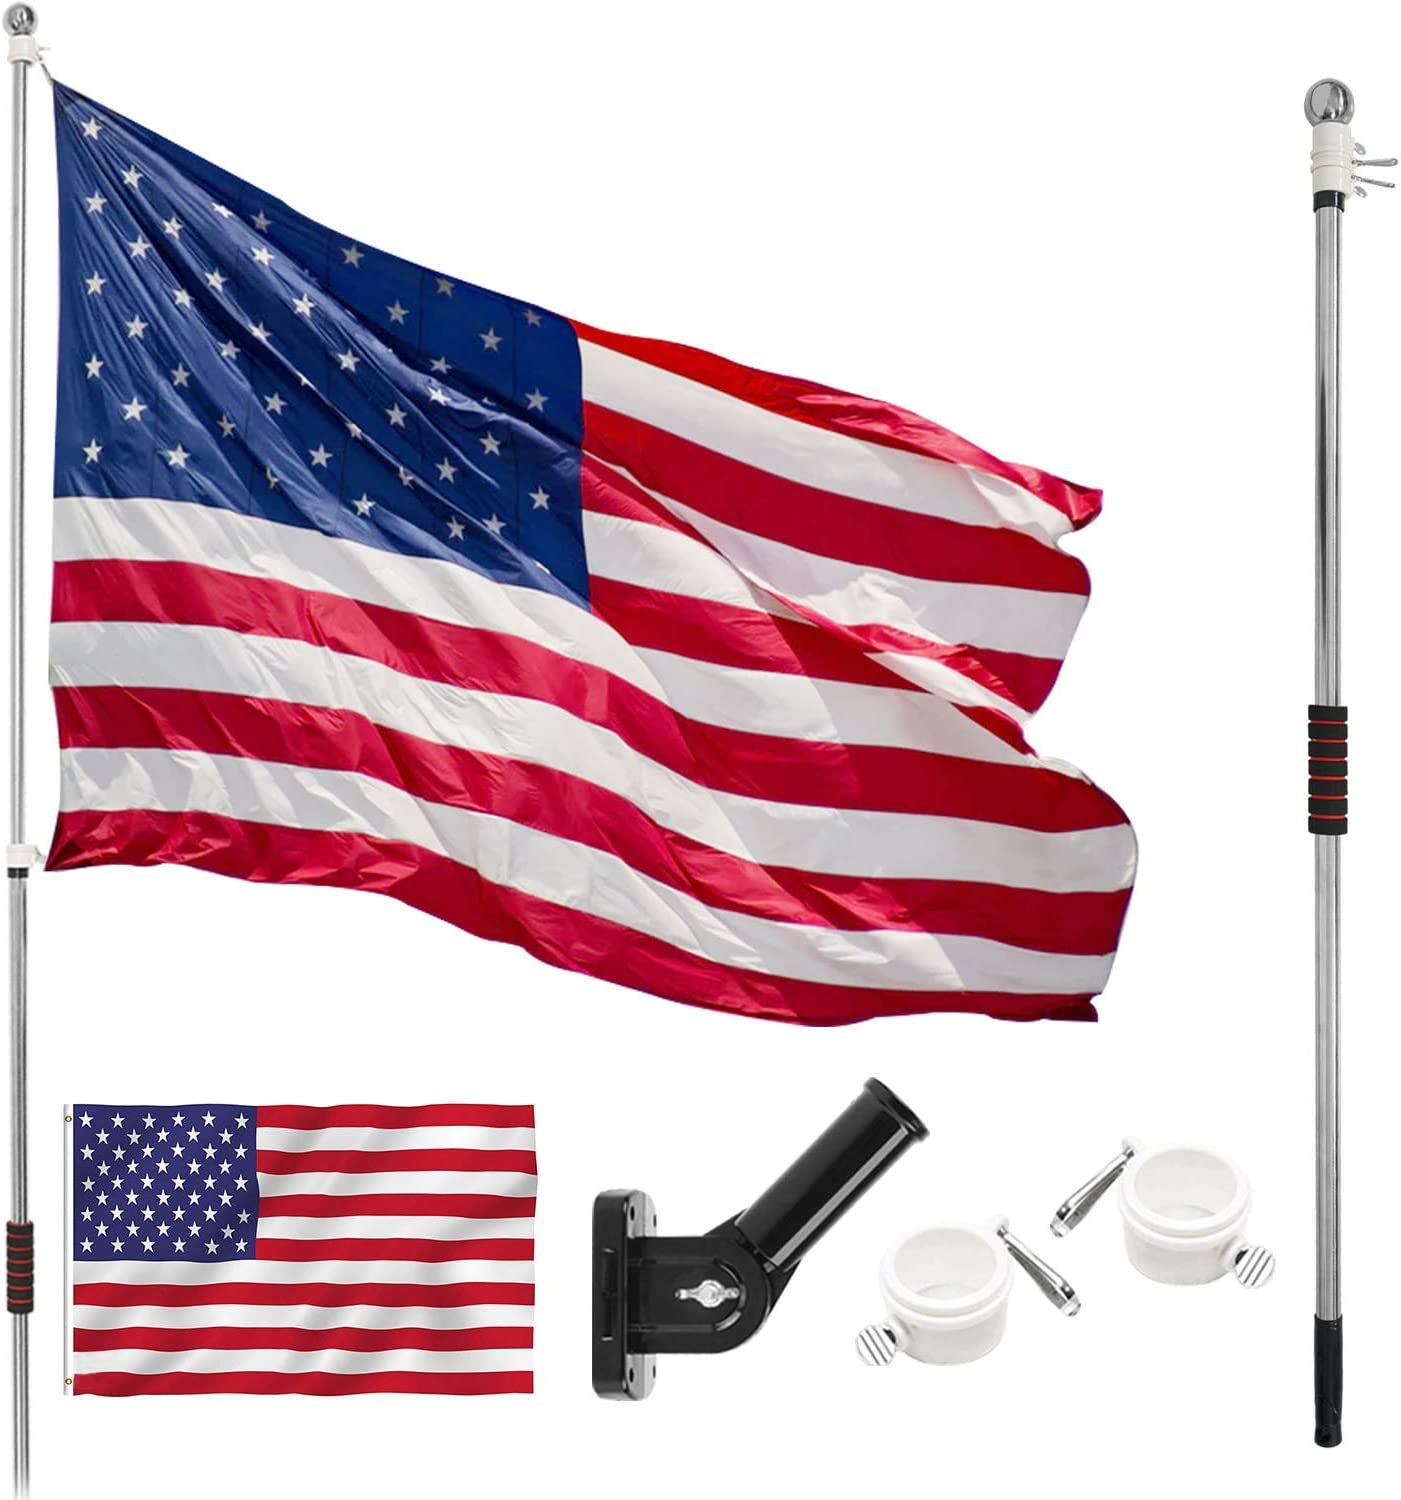 PUJIANG 6.5 FT Flag Pole Kit, Stainless Steel Spinning Flag Pole with 3x5 American Flag, Flag Pole Bracket and Tangle Free Wall Mount Flag Pole for Outdoor Garden Roof Walls Yard Truck (Silver)